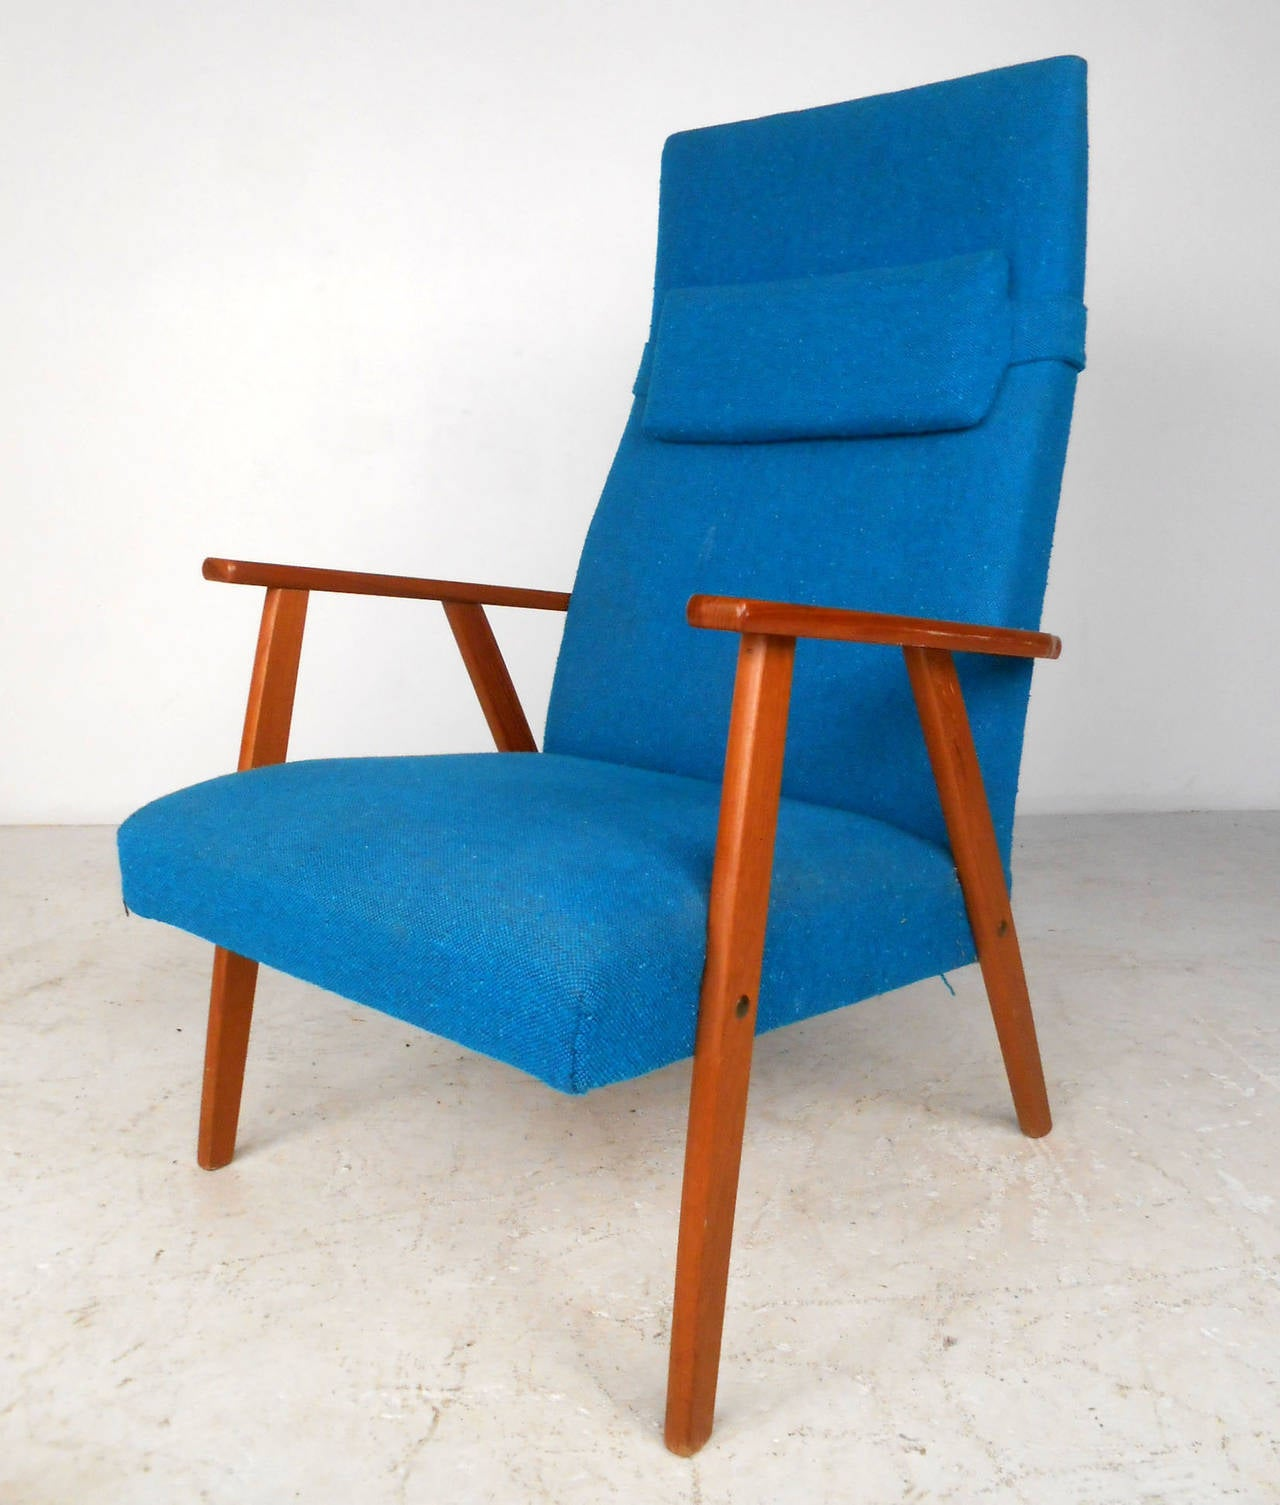 This beautiful vintage armchair features sturdy Mid-Century construction and a comfortable molded high backseat. Perfect lounge chair in wonderful vintage fabric. Removable headrest and retro style make this a great addition to any room. Please